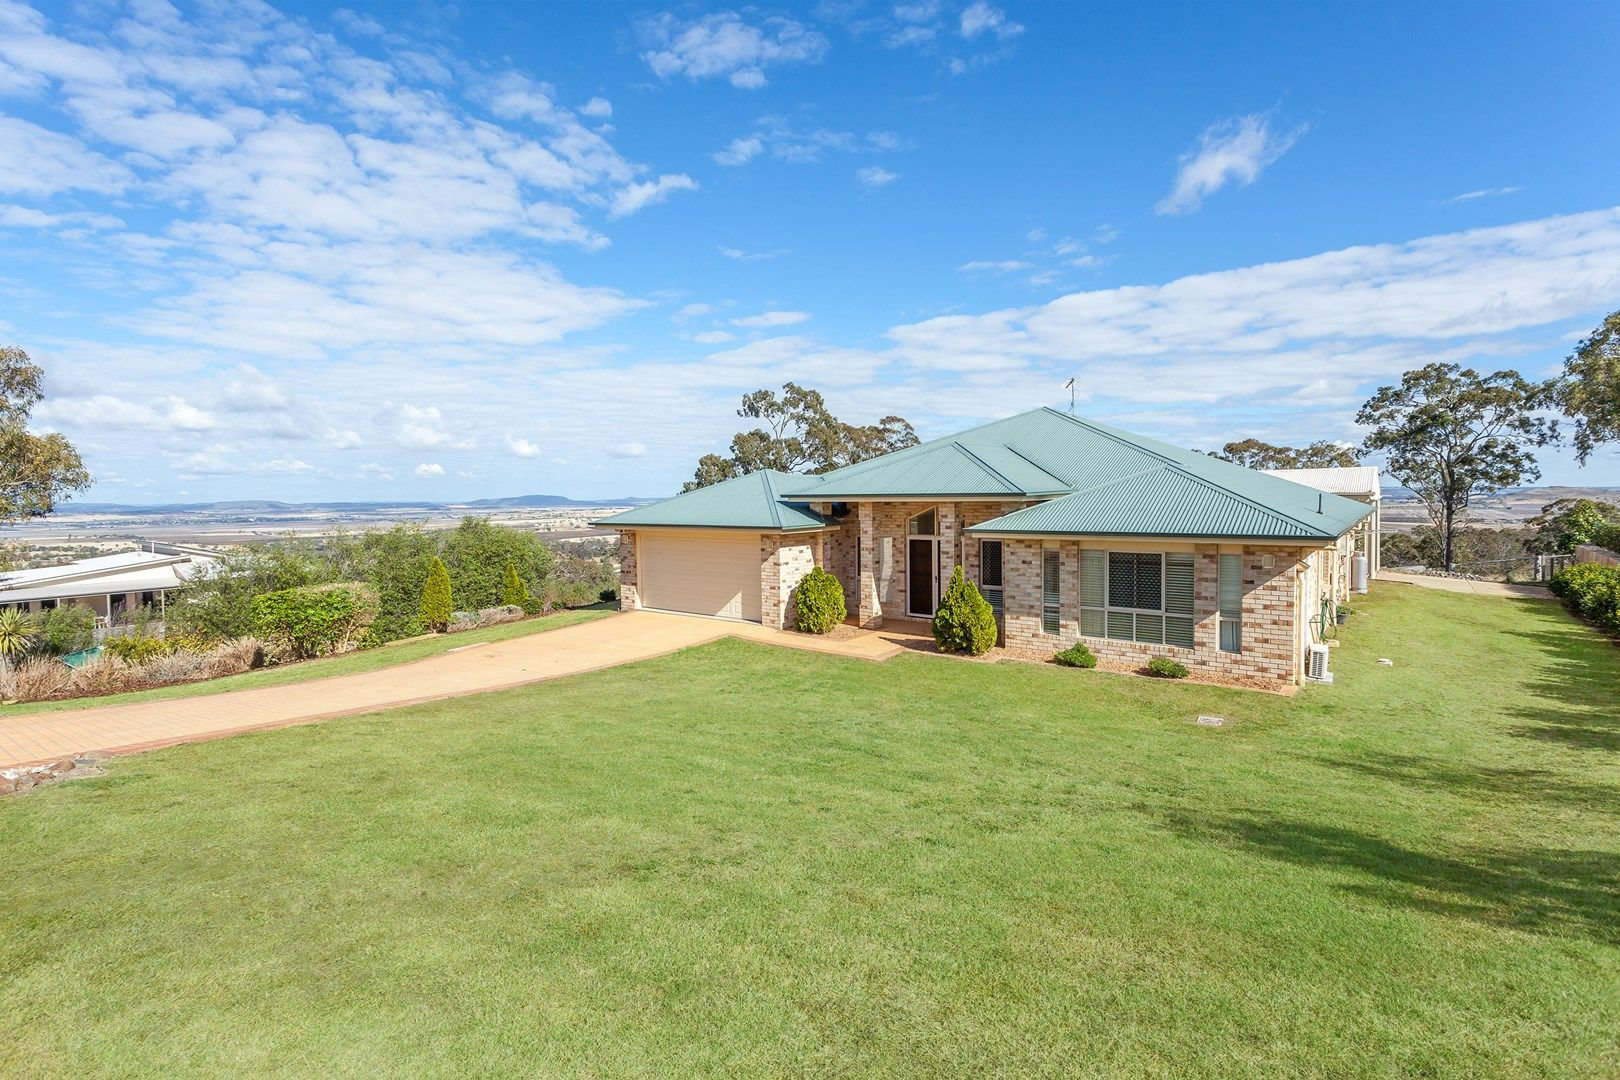 9 Timothy Drive, Vale View QLD 4352, Image 0